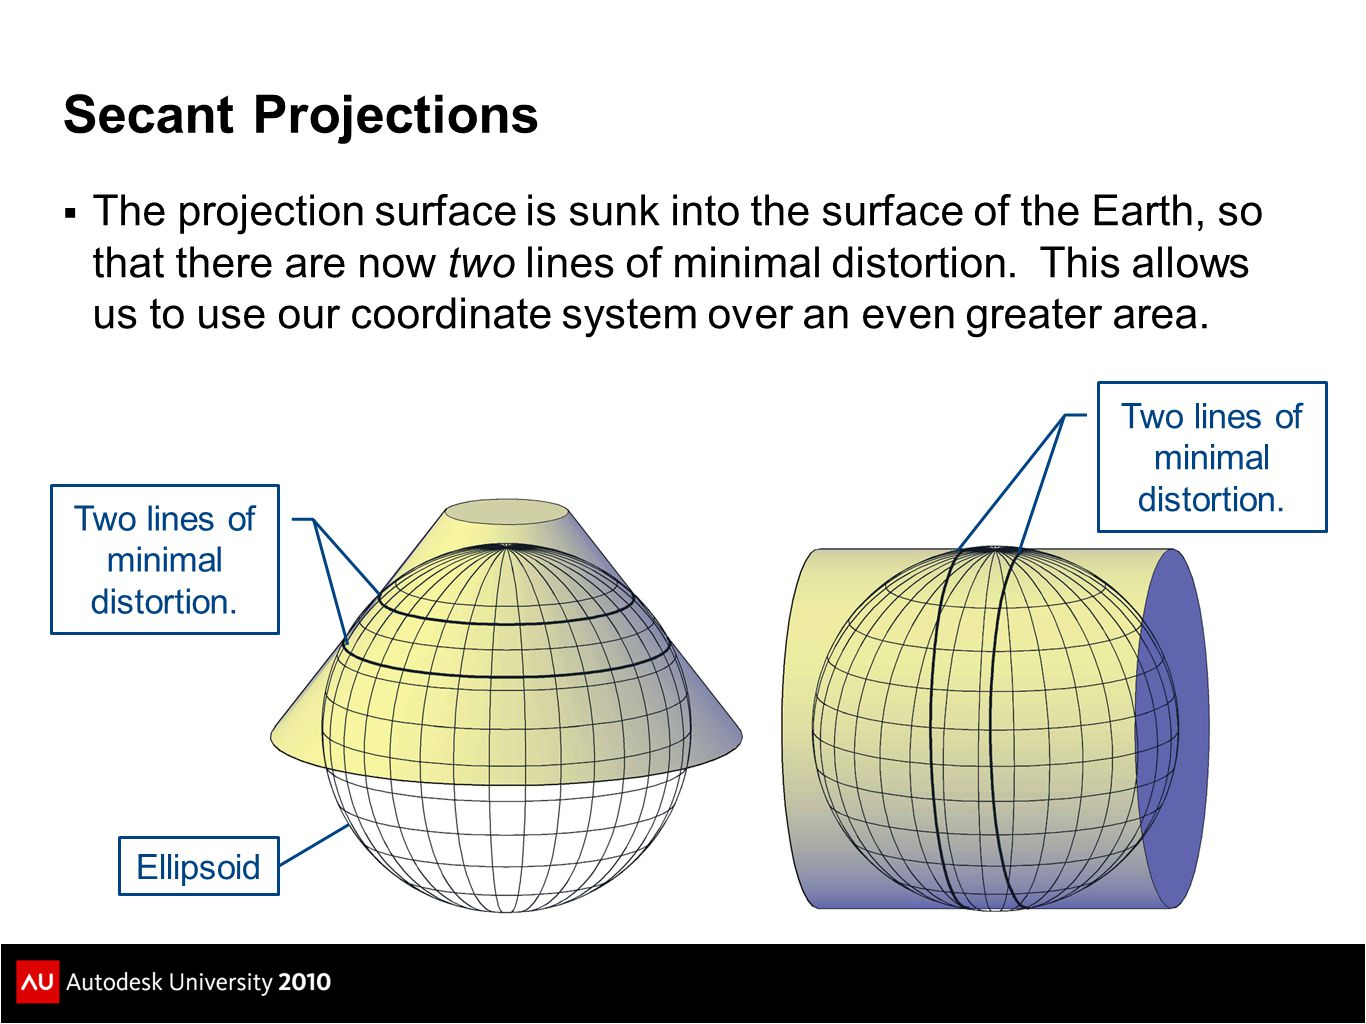 Ellipsoid Projection Surface Overall Zone Width Balances positive and negative distortion 1/62/31/6 Grid length A'B' is less than ellipsoidal length AB (grid scale factor < 1) Grid length A'B' is greater than ellipsoidal length AB (grid scale factor > 1) k = Grid Scale Factor A'B' = k · AB AB A'B' A B A'B'